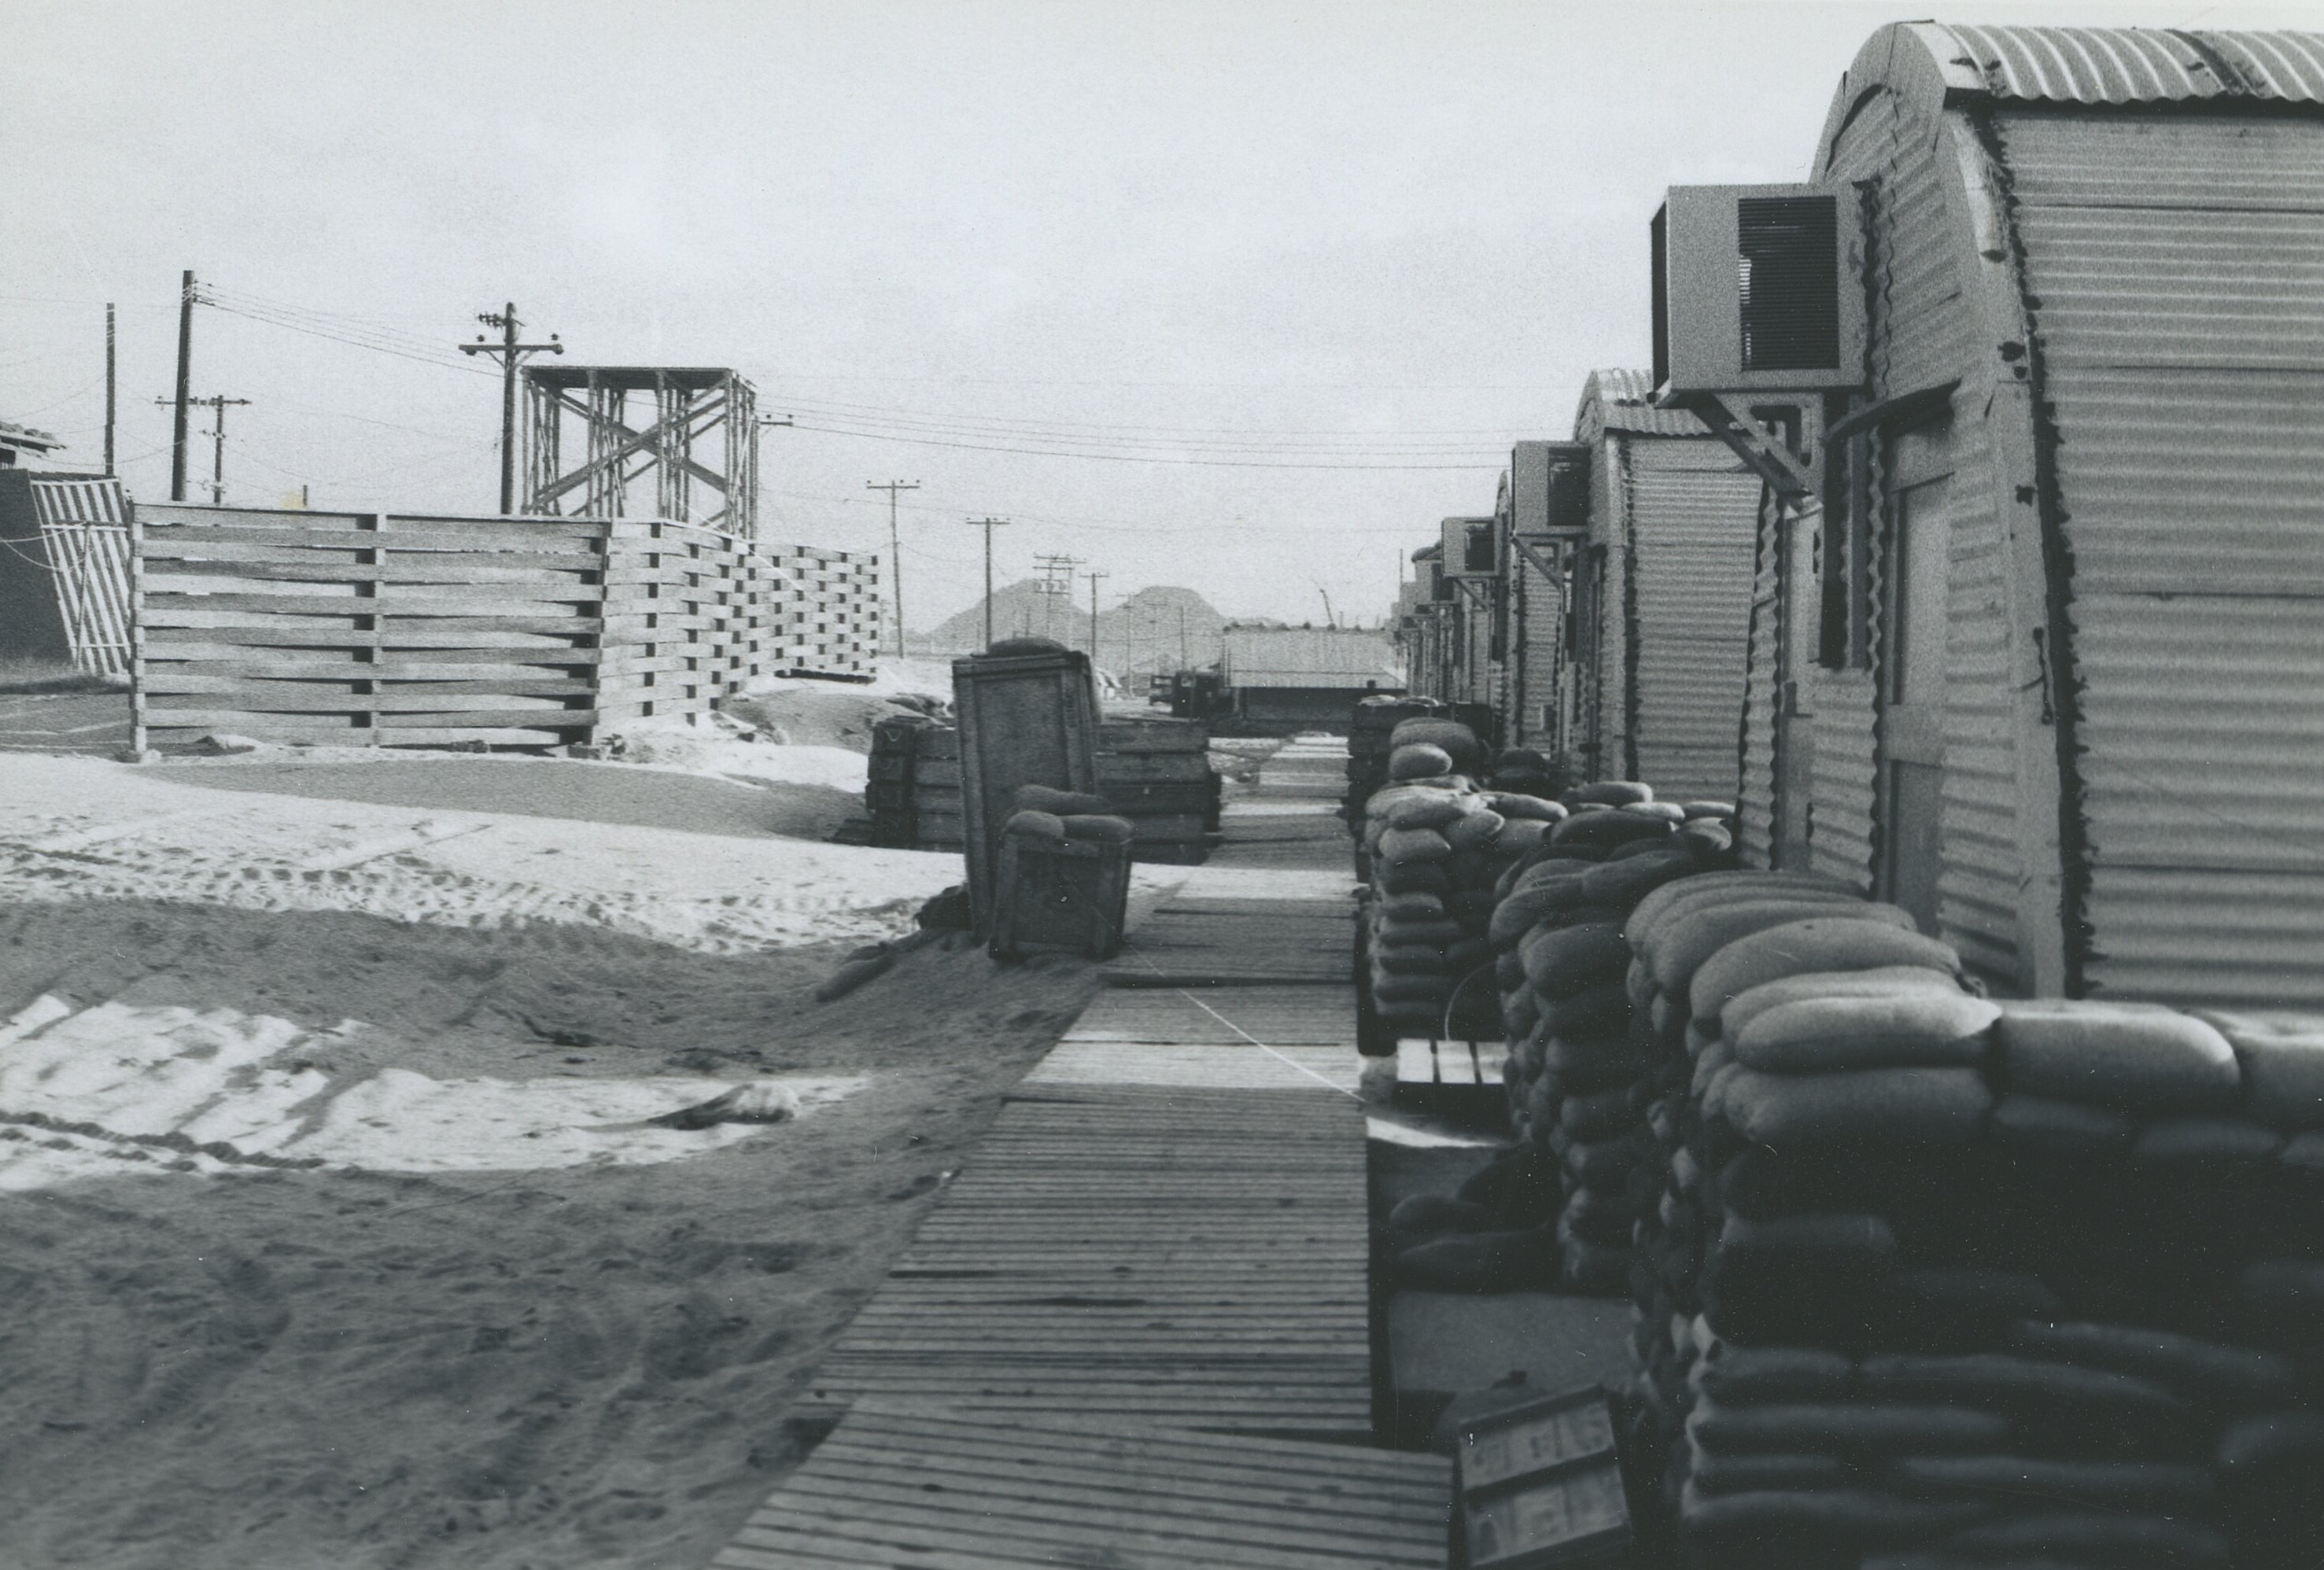 Squat corrugated steel buildings with sandbags stacked around them.